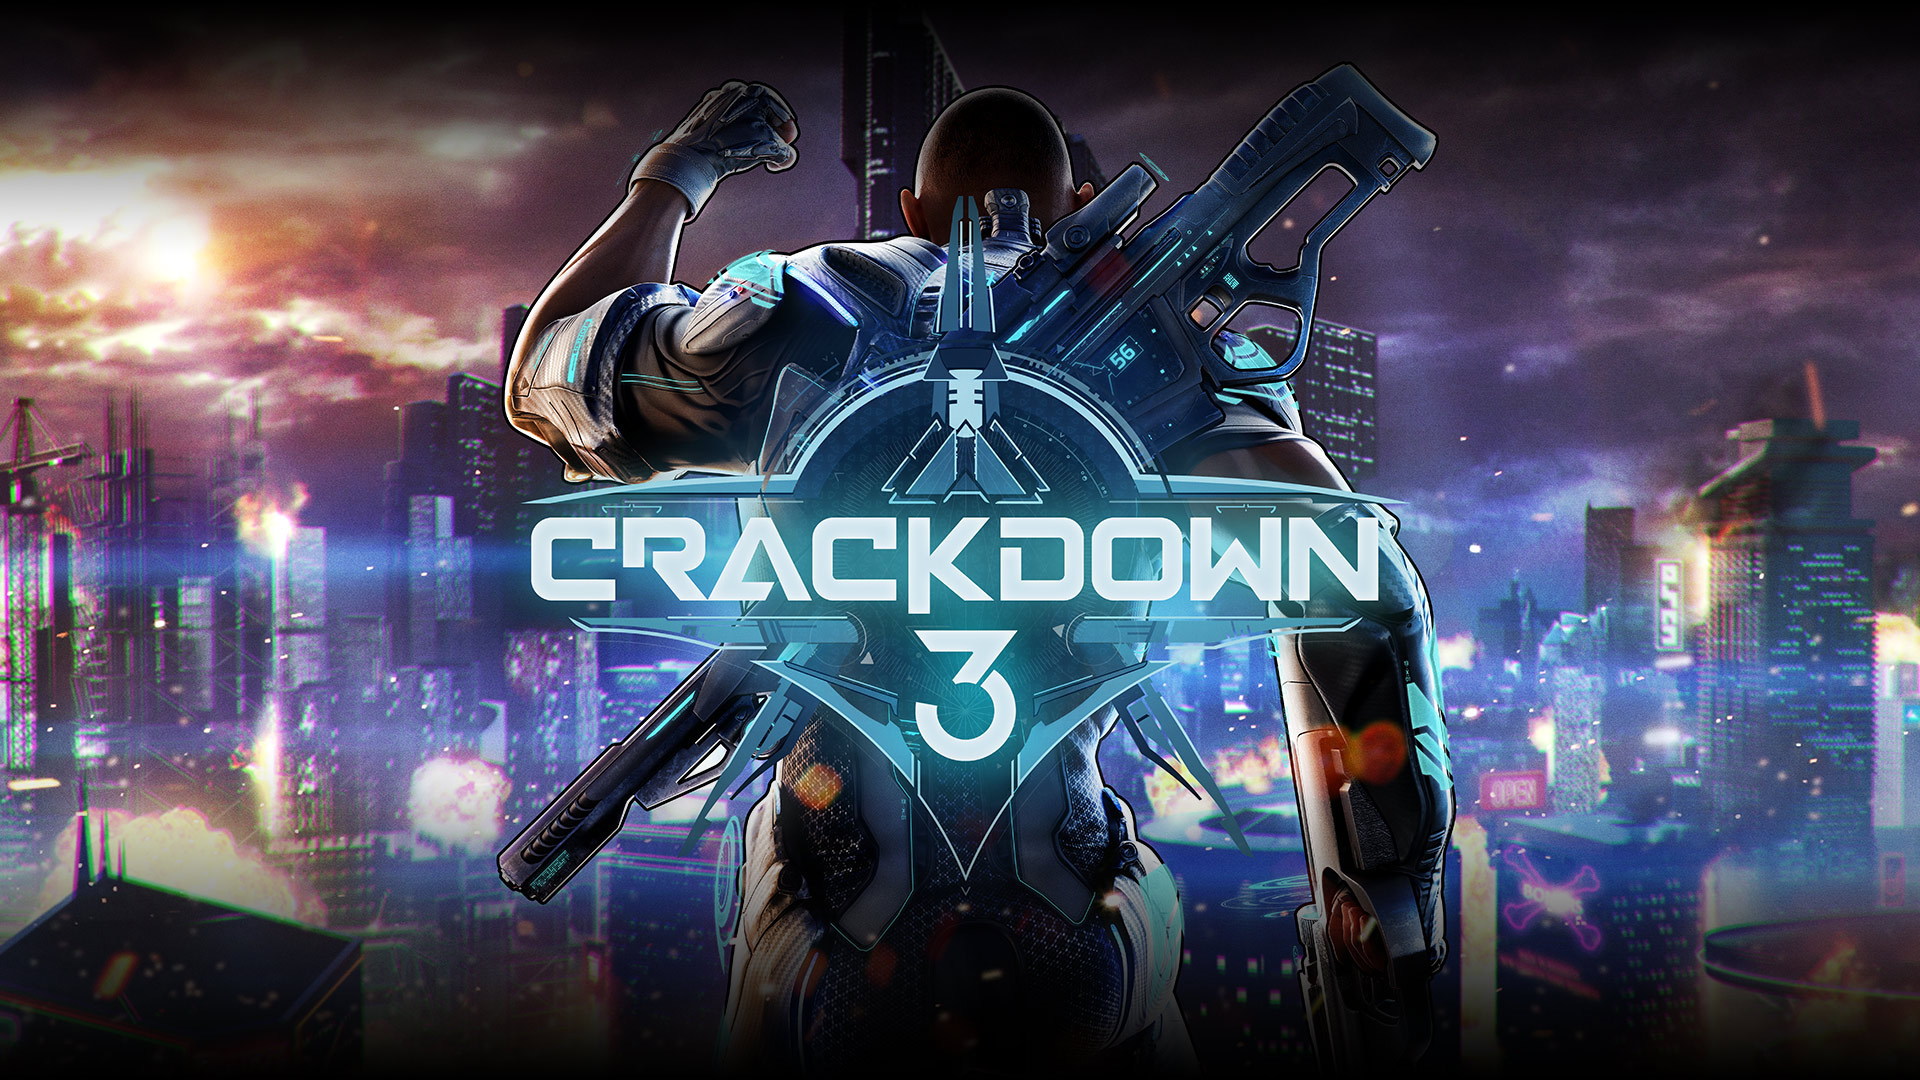 all weapons, unlock, crackdown 3